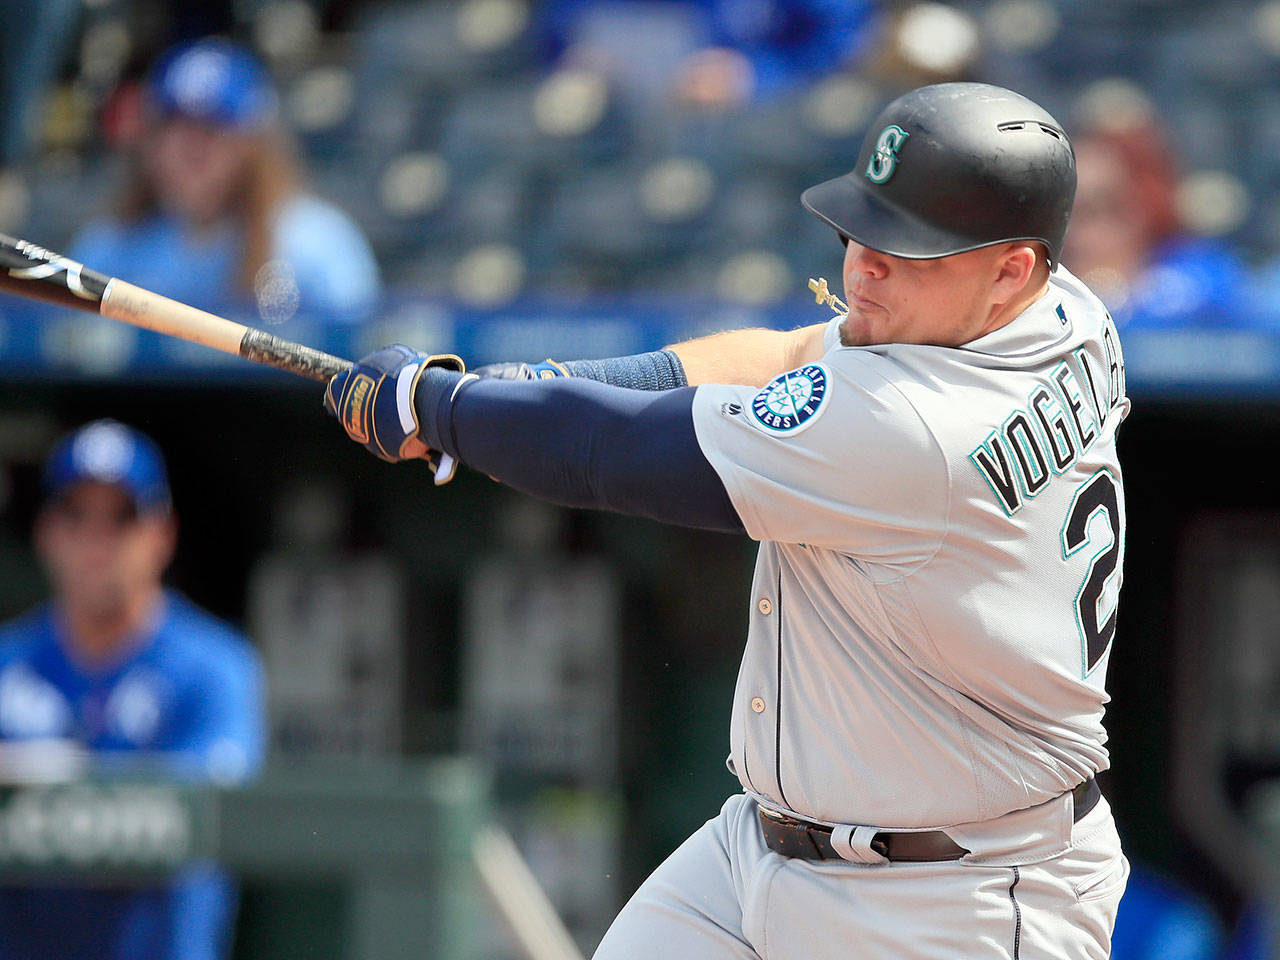 Seattle's Daniel Vogelbach hits a solo home run during the 10th inning of the Mariners' 7-6 win over the Royals on Thursday in Kansas City, Missouri. (AP Photo/Orlin Wagner)